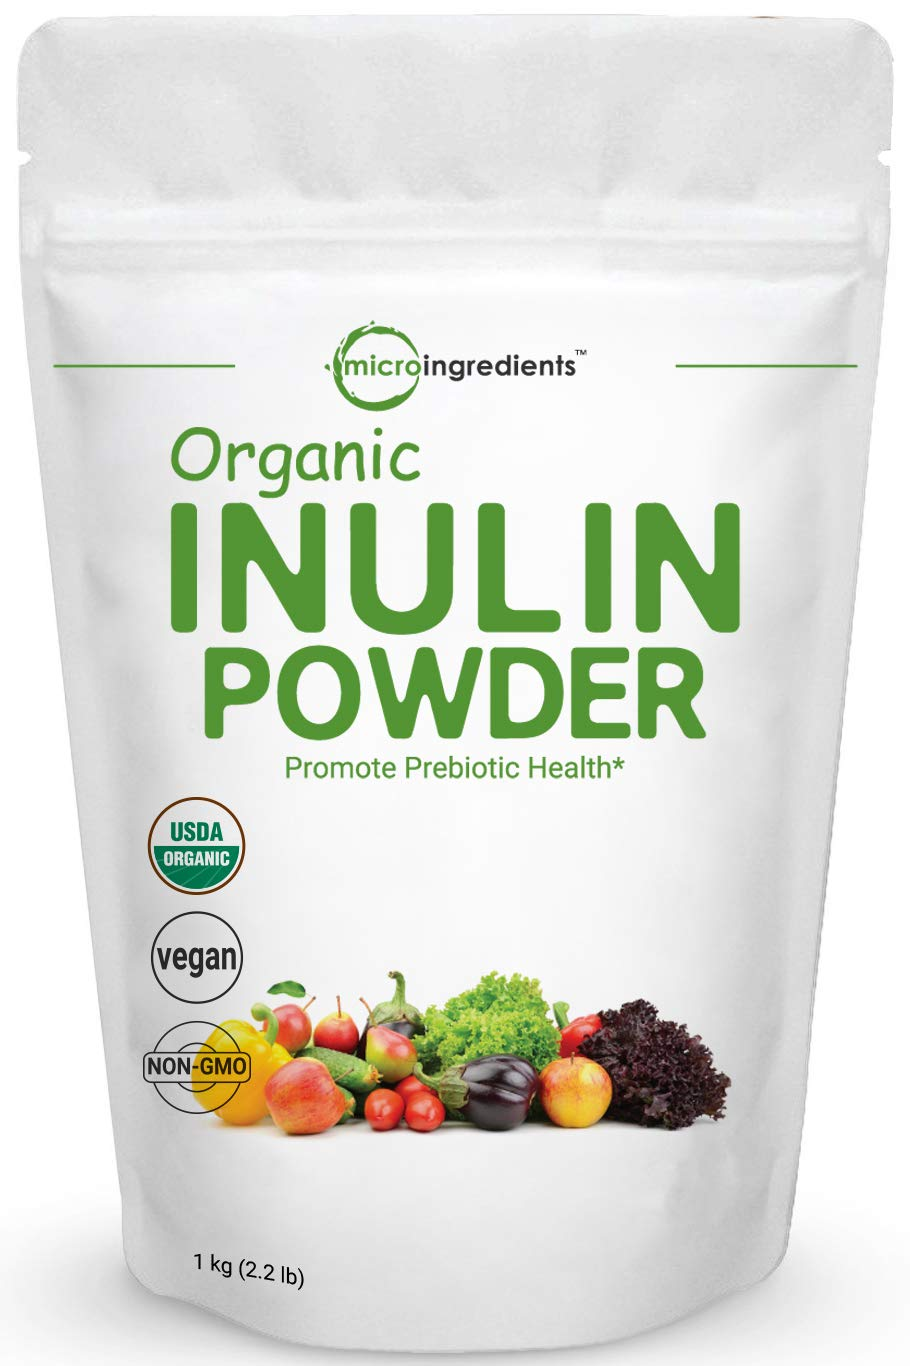 Organic Inulin FOS Powder (Jerusalem Artichoke), 1KG (35 Ounce), Inulin Powder for Baking, Prebiotic Intestinal Support, Colon and Gut Health, Natural Water Soluble Fibers for Smoothie & Drinks, Vegan